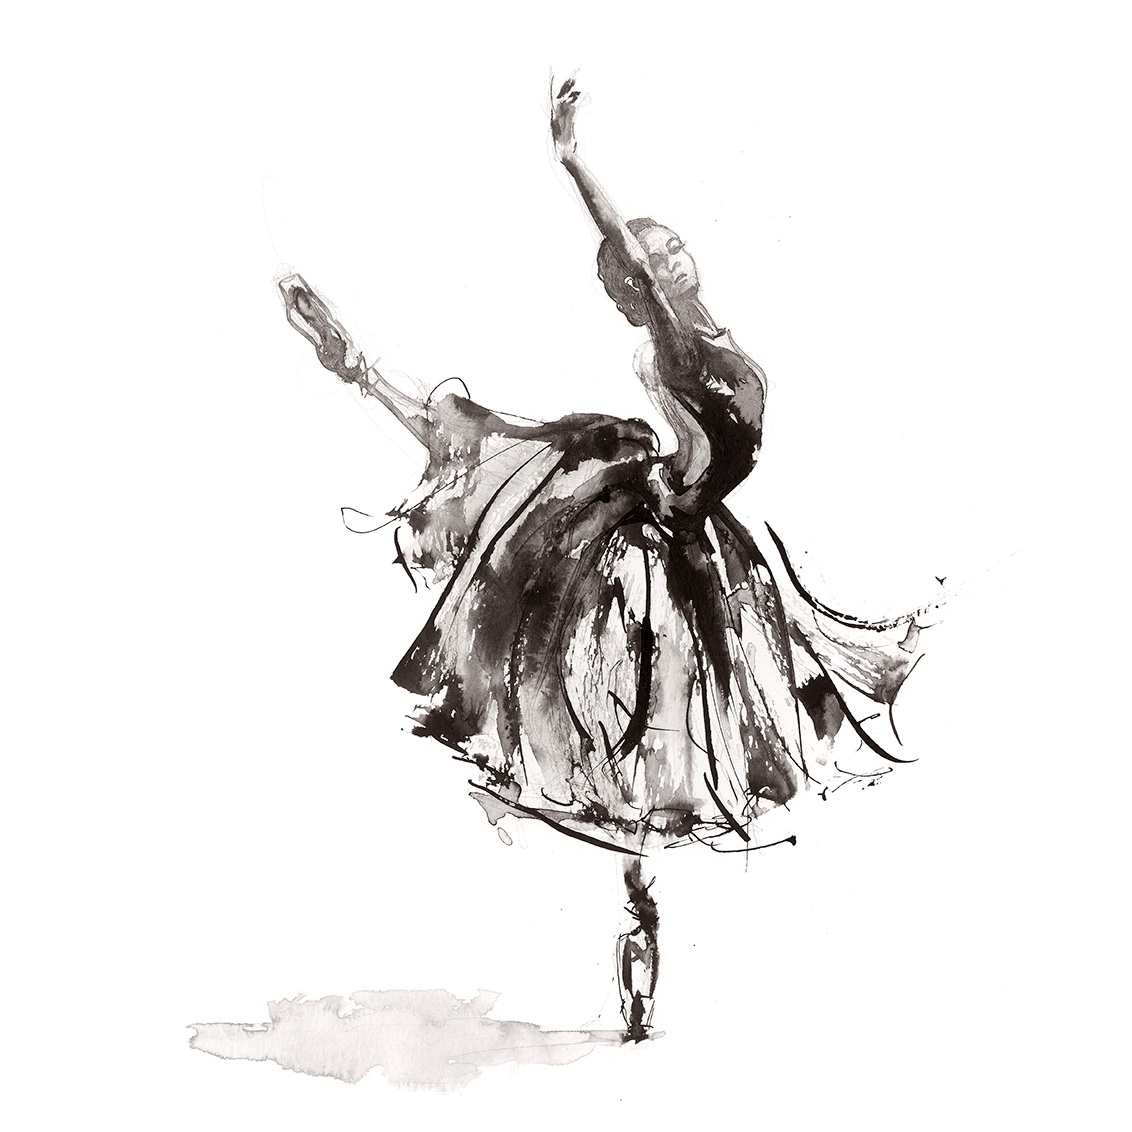 'Symphony'.  Fine Art Print by Artist, Dana Trijbetz.  Ballet Dancers Collection.  Original Ink Painting made as a Giclée Print on 100% Cotton Paper.  Image 2 of 3.jpg